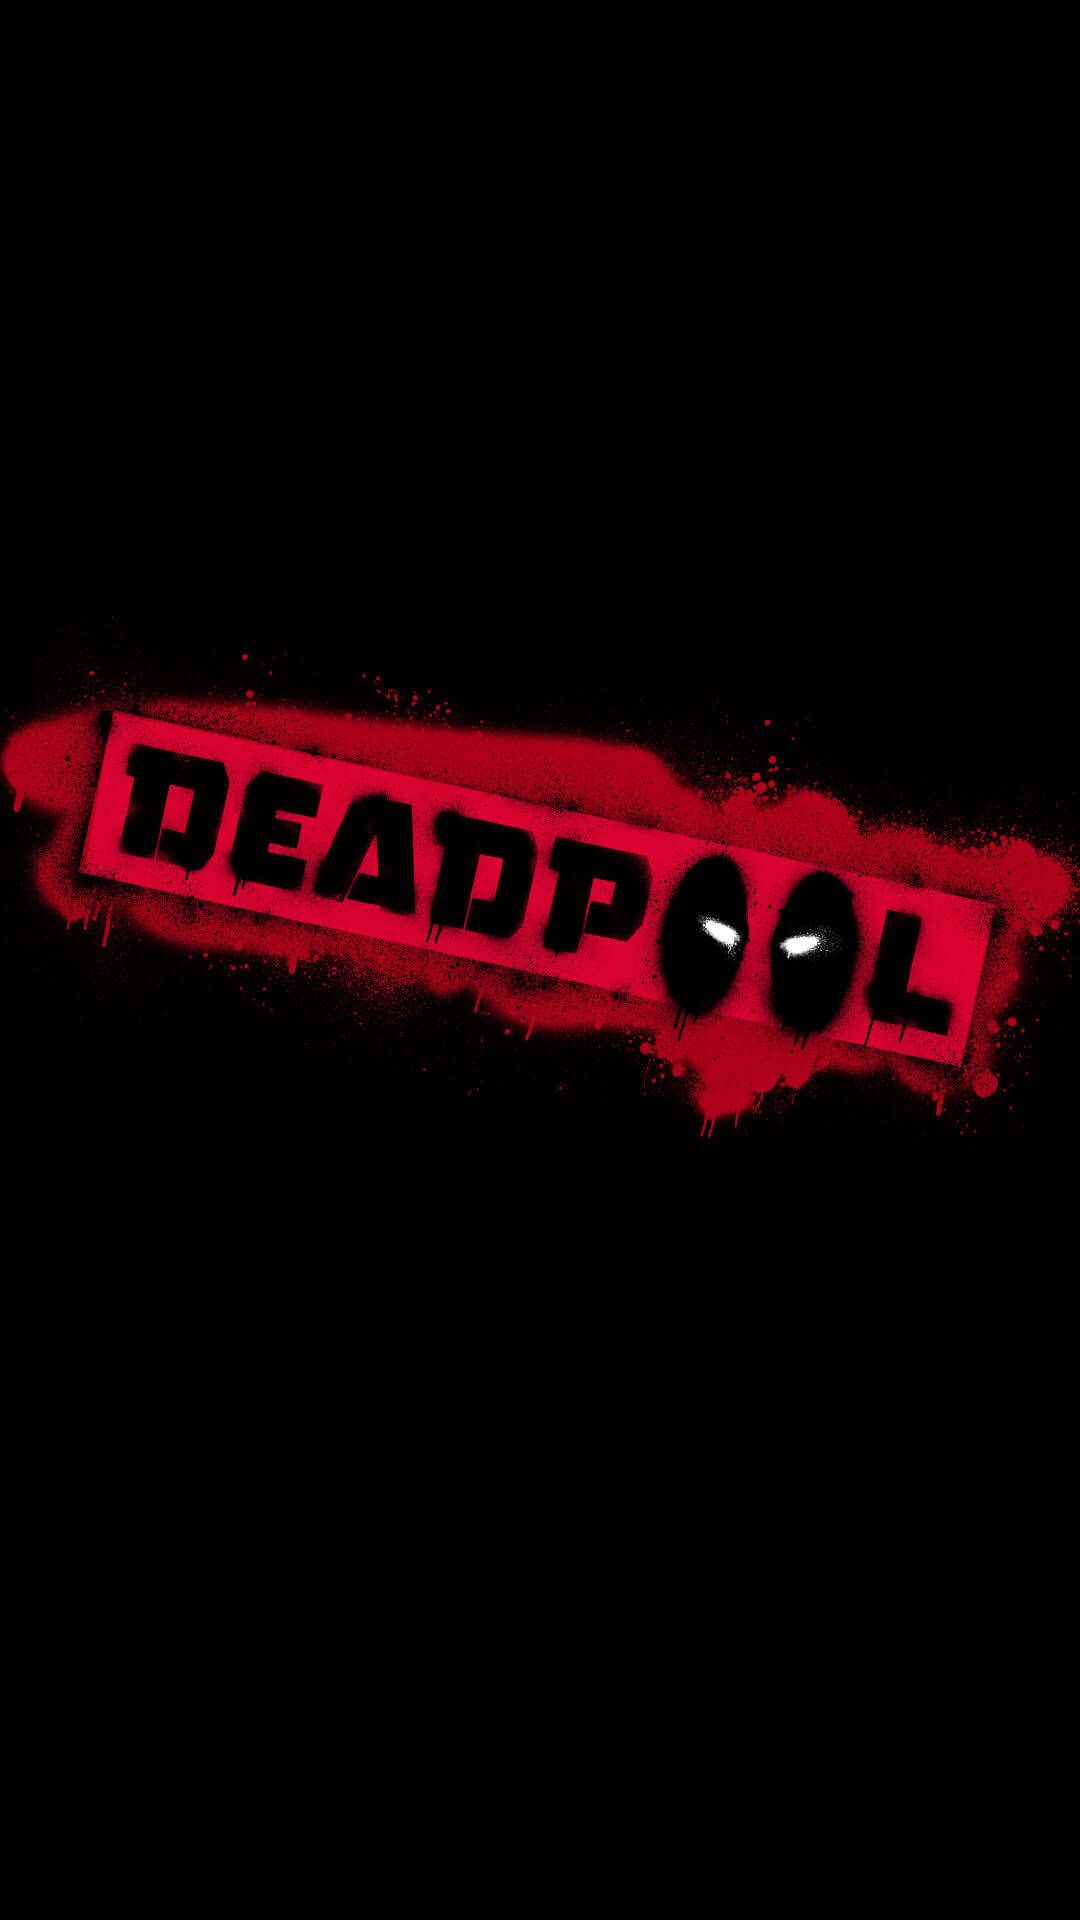 Deadpool logo iphone 6 wallpaper hd all marveldcother deadpool logo iphone 6 wallpaper hd voltagebd Choice Image